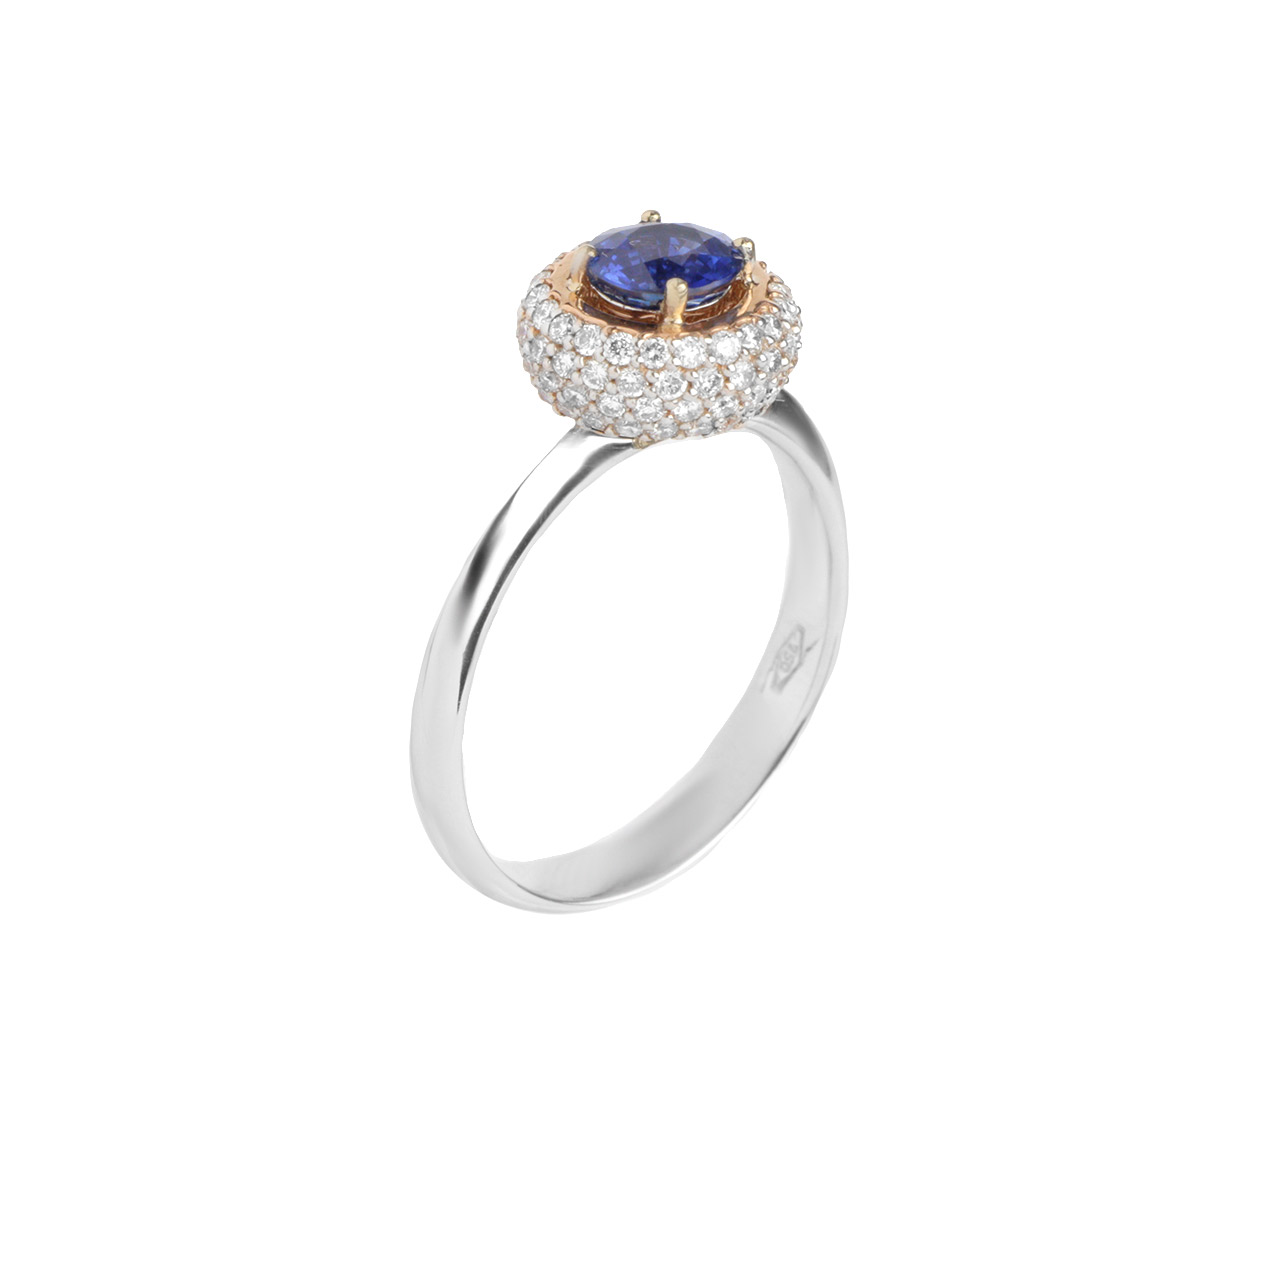 'Kashmir' Blue Sapphire and Diamond Ring